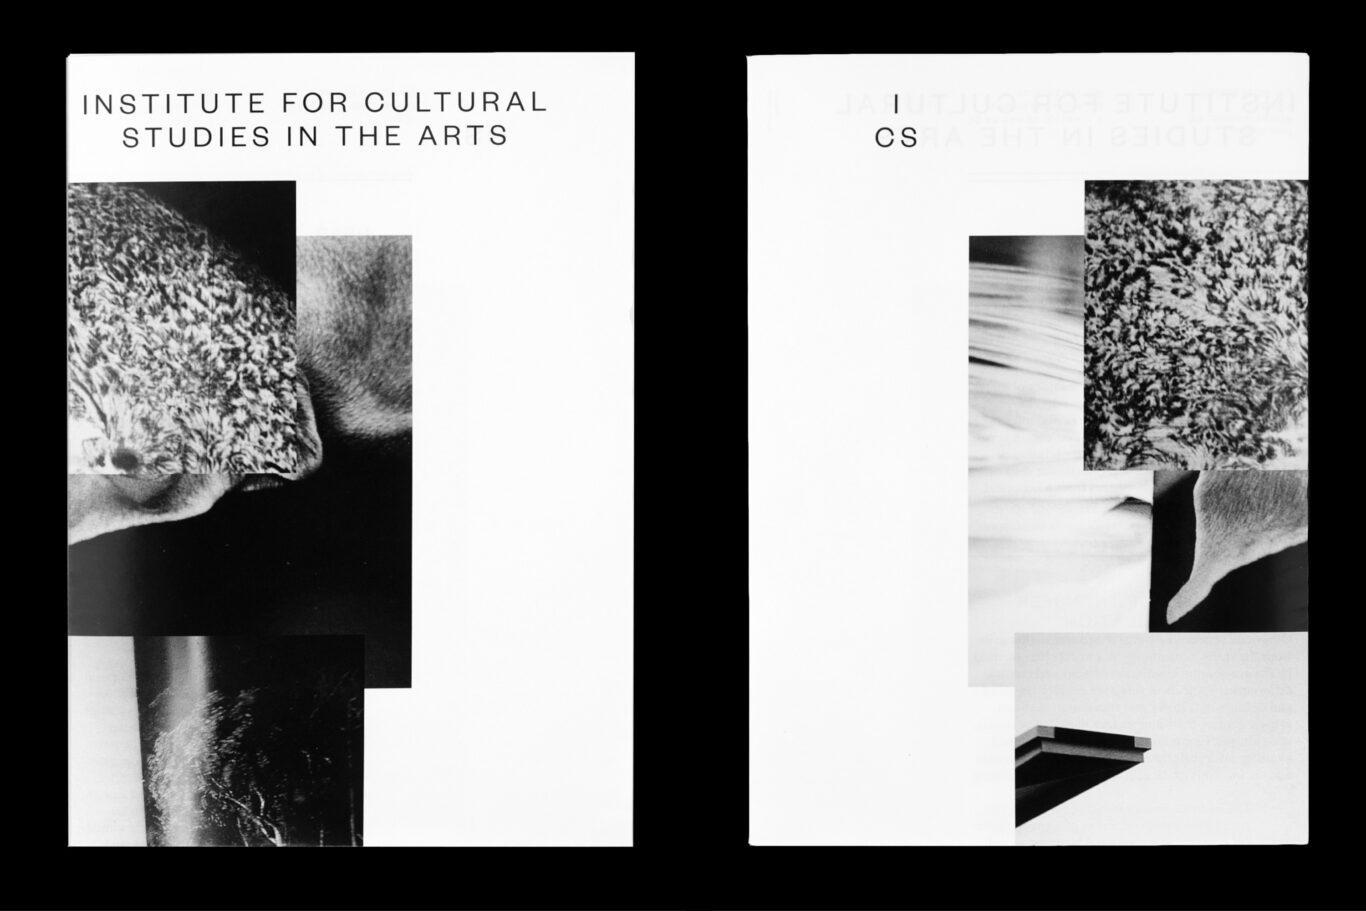 Esther Rieser, ICS, cultural Studies in the arts, ZHdK, visual identity, 2014